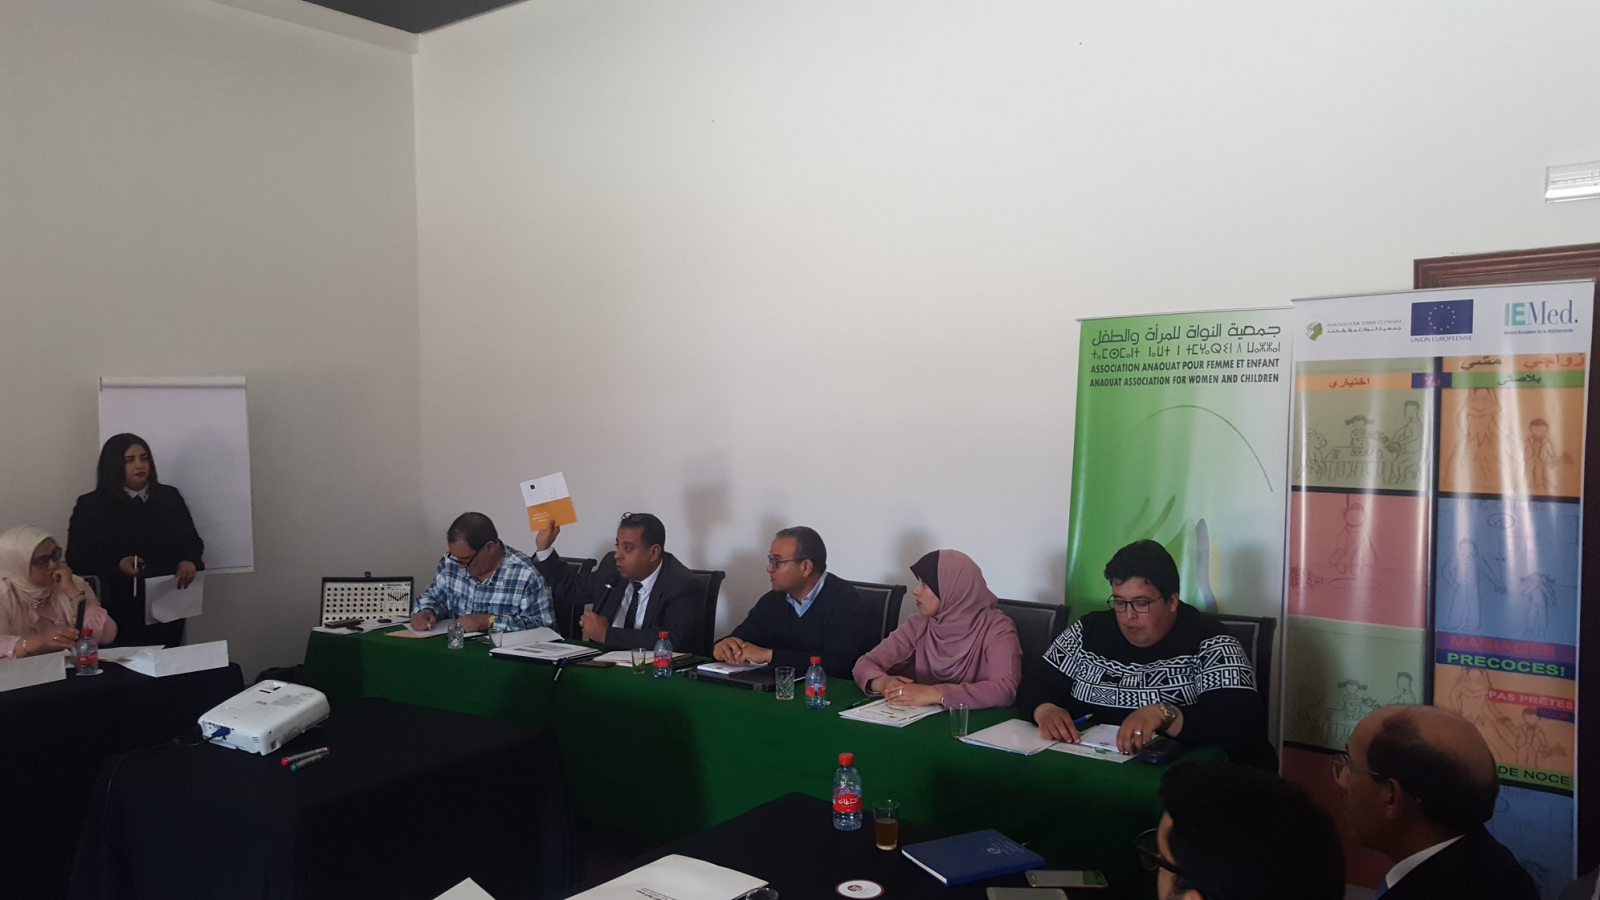 EU-funded project spurs policy dialogue on child marriage in Morocco